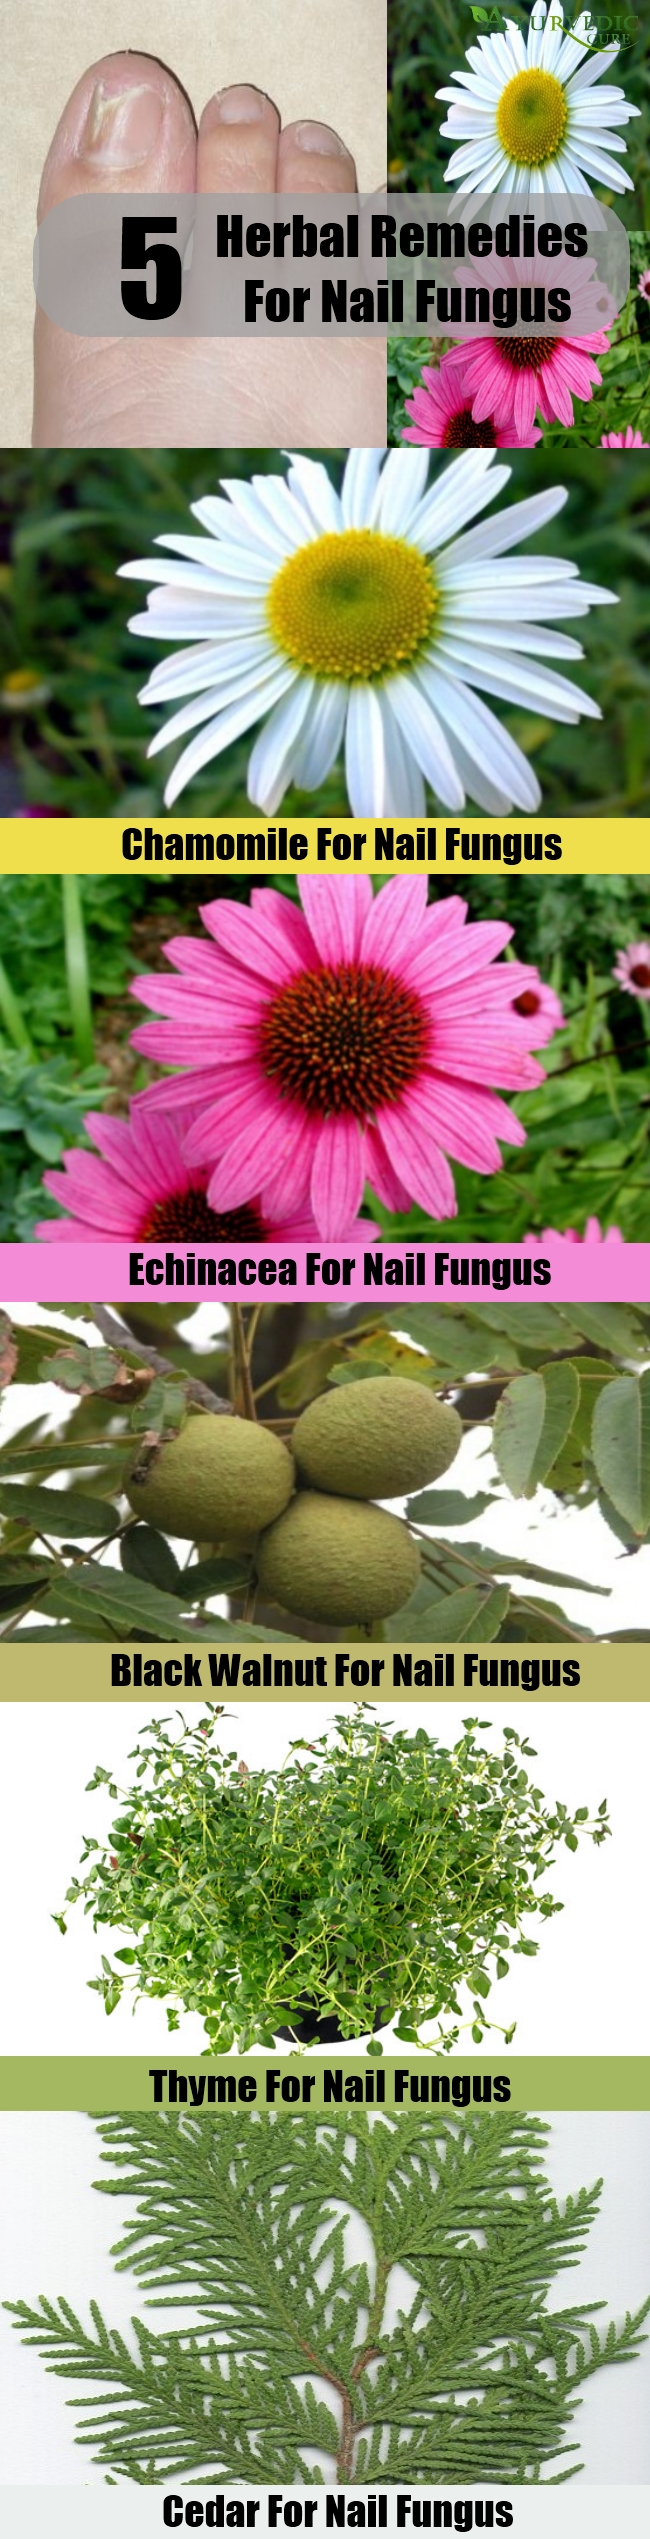 Top 5 Herbal Remedies For Nail Fungus